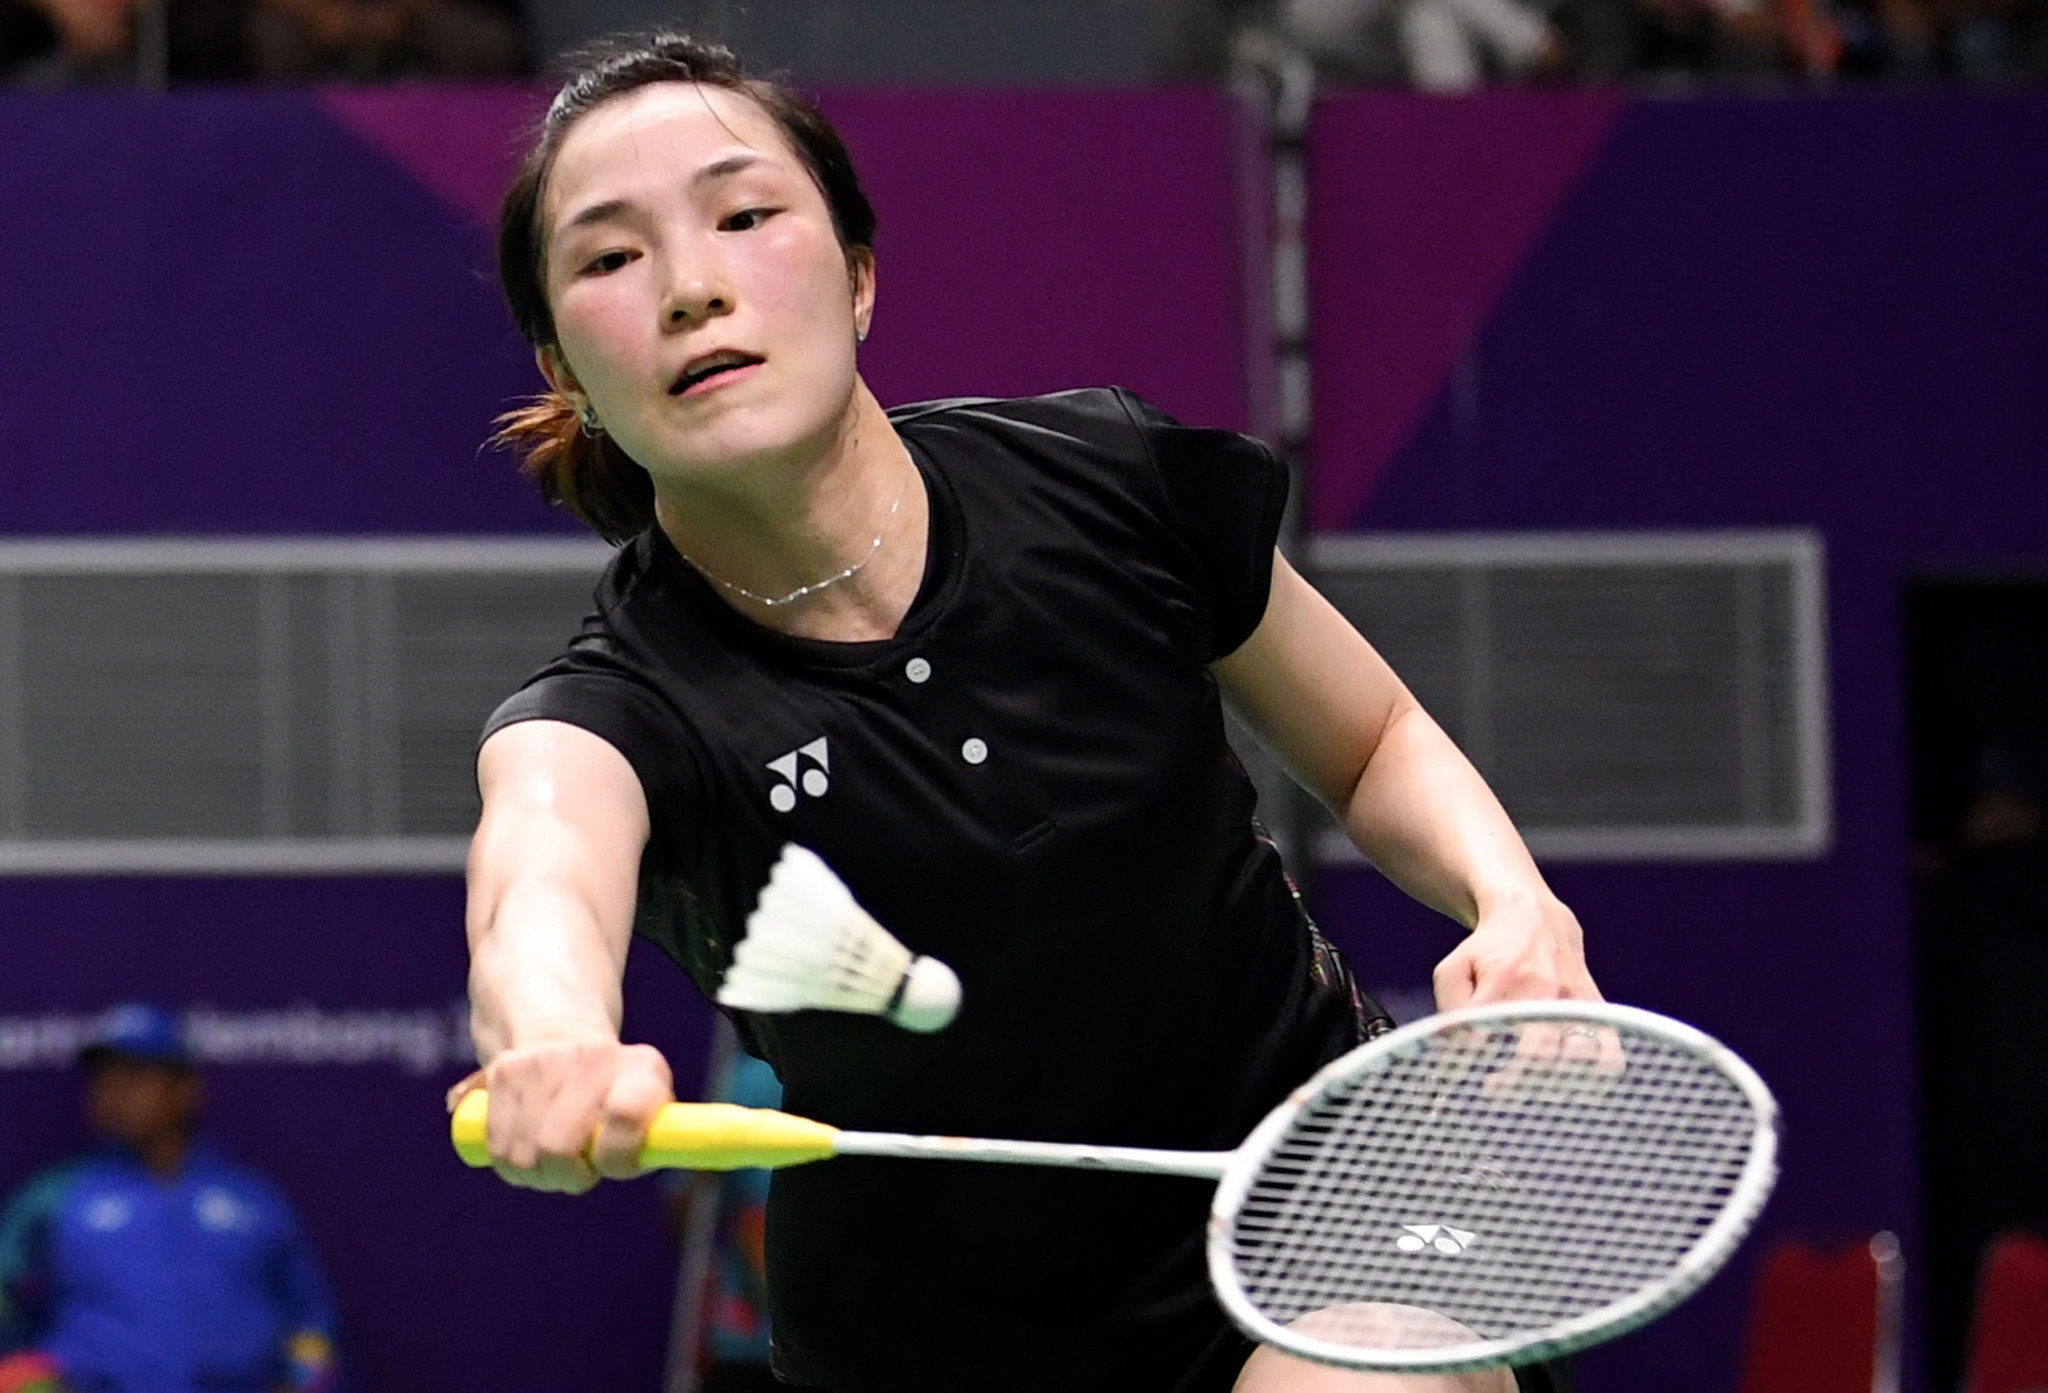 Vietnam's Thi Trang Vu will play top seed Chen Yufei of China in the first round of the women's singles draw ©Getty Images